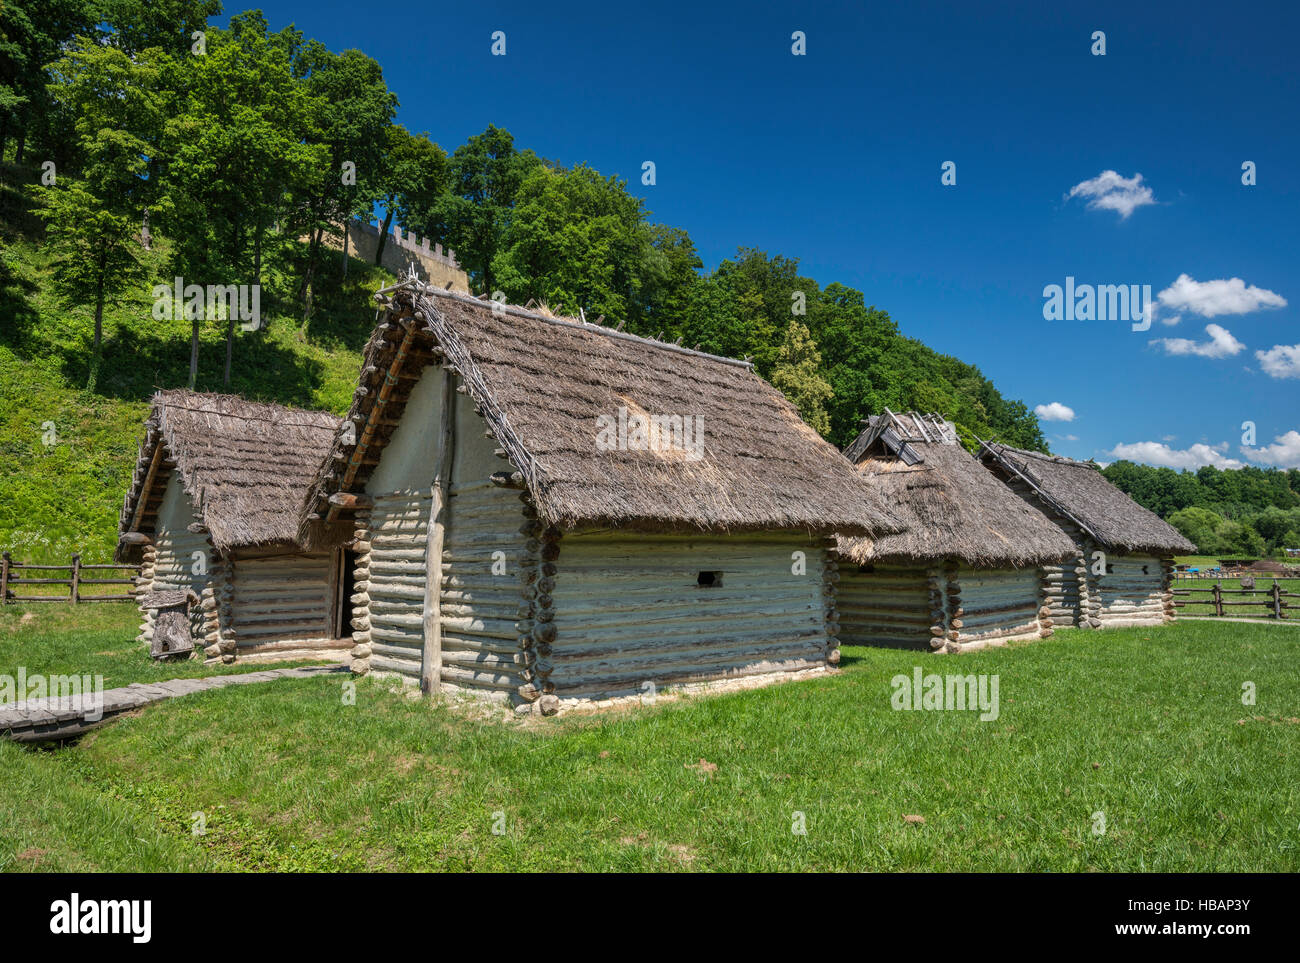 Slavonic cottages, 9th century, reconstruction, Carpathian Troy Archaeological Open-Air Museum in Trzcinica, Malopolska, - Stock Image